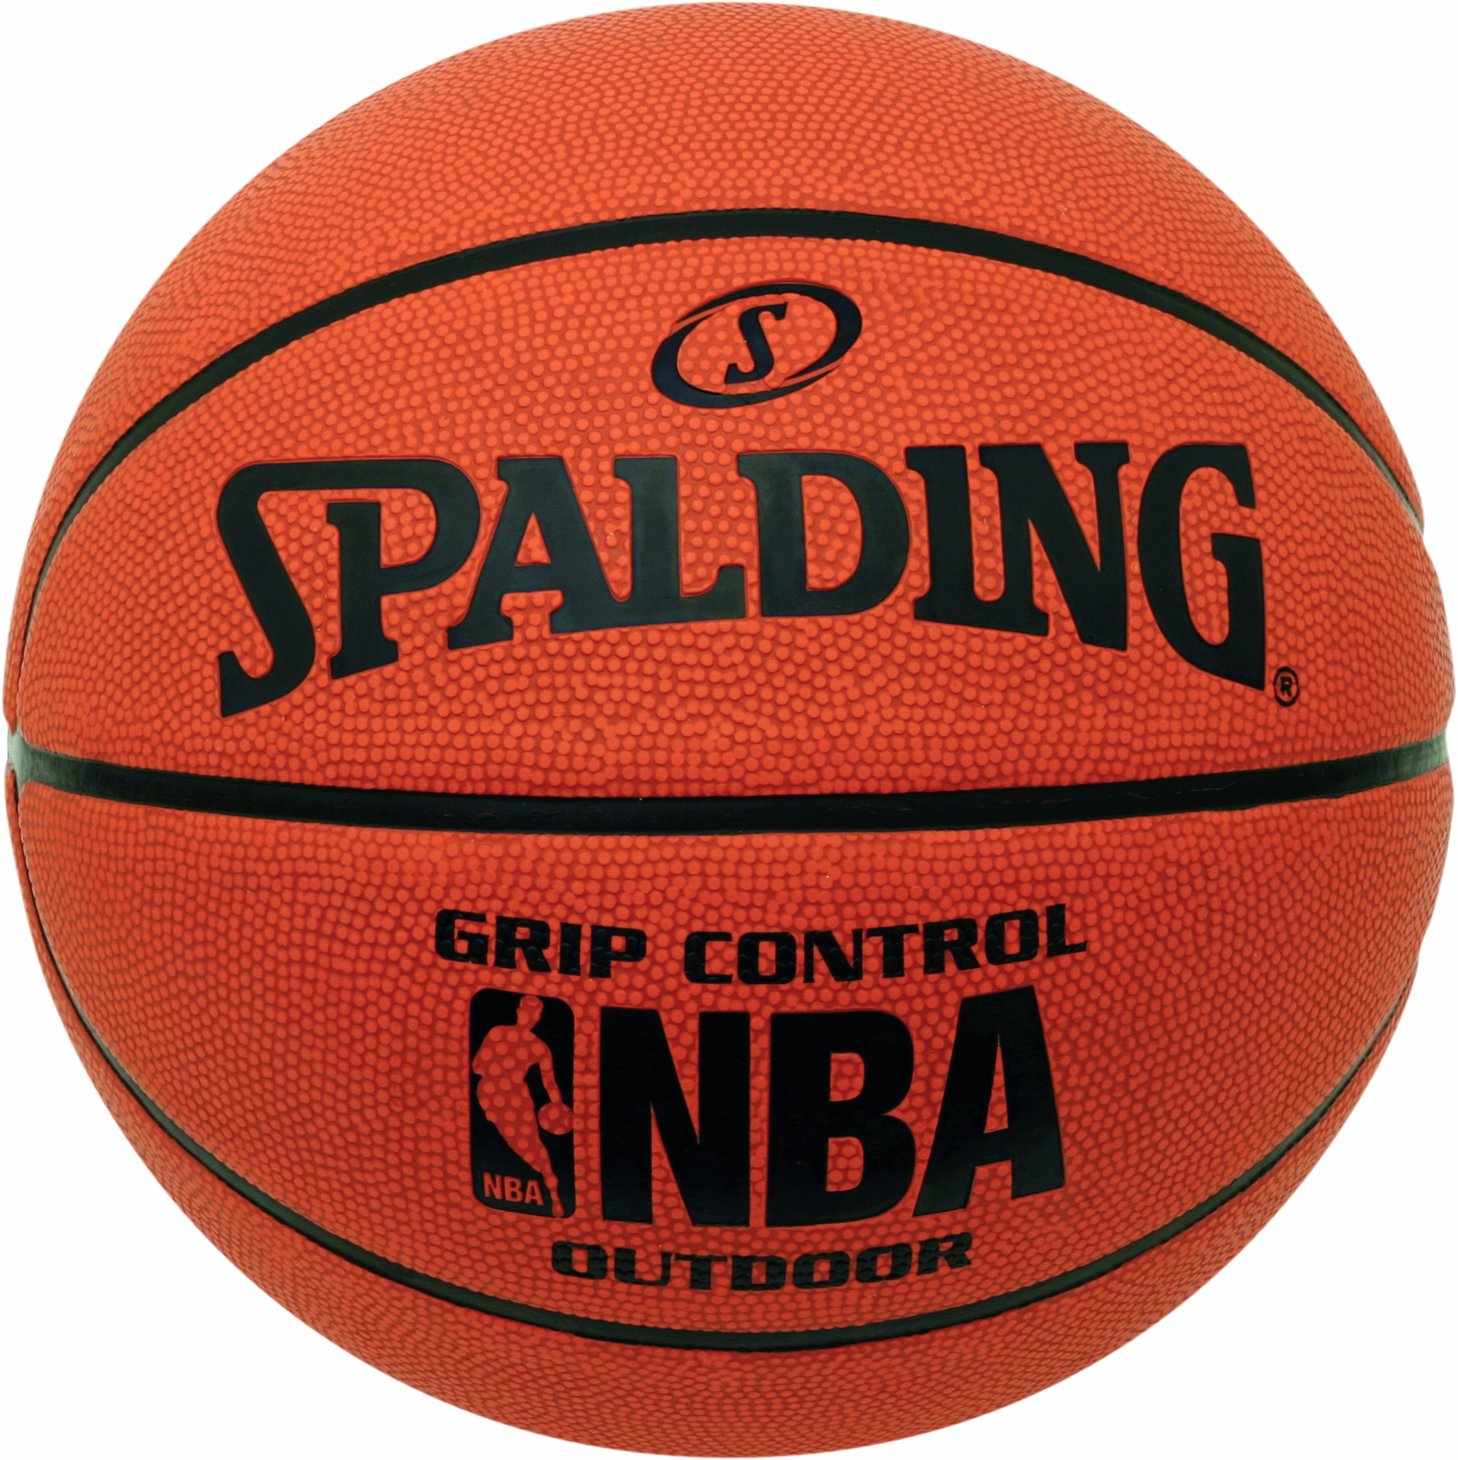 Basketball - Spalding Grip Control NBA Grip Control Outdoor